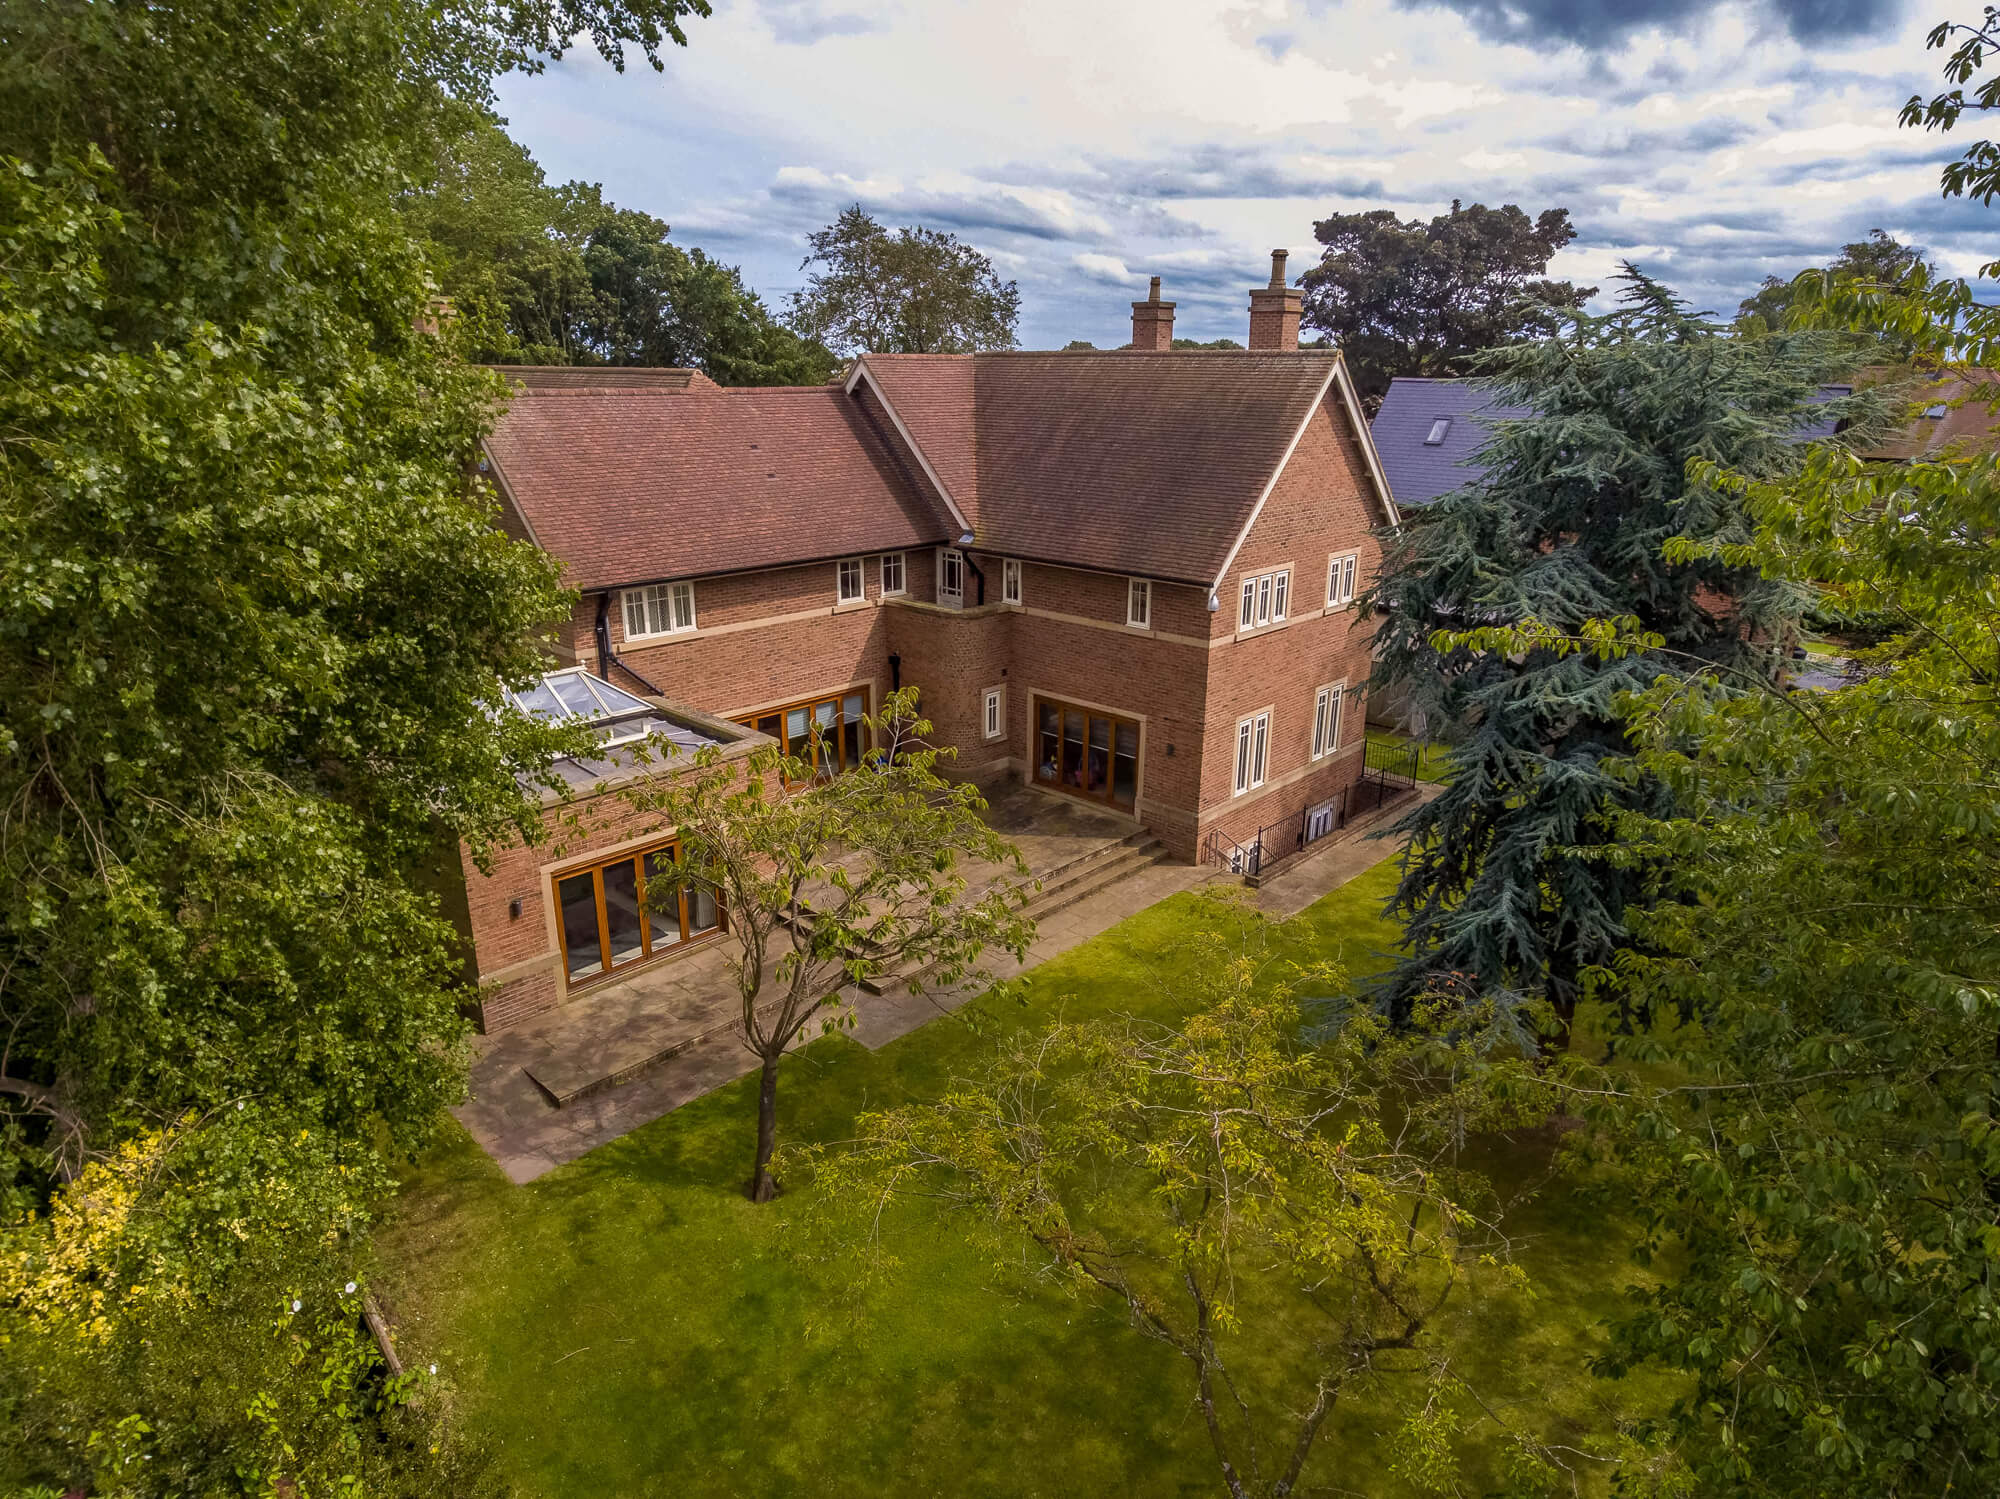 Aerial photography and videography of a property using a drone for marketing in Sunderland. Aerial photo used for marketing material by Paul Airey estate agent